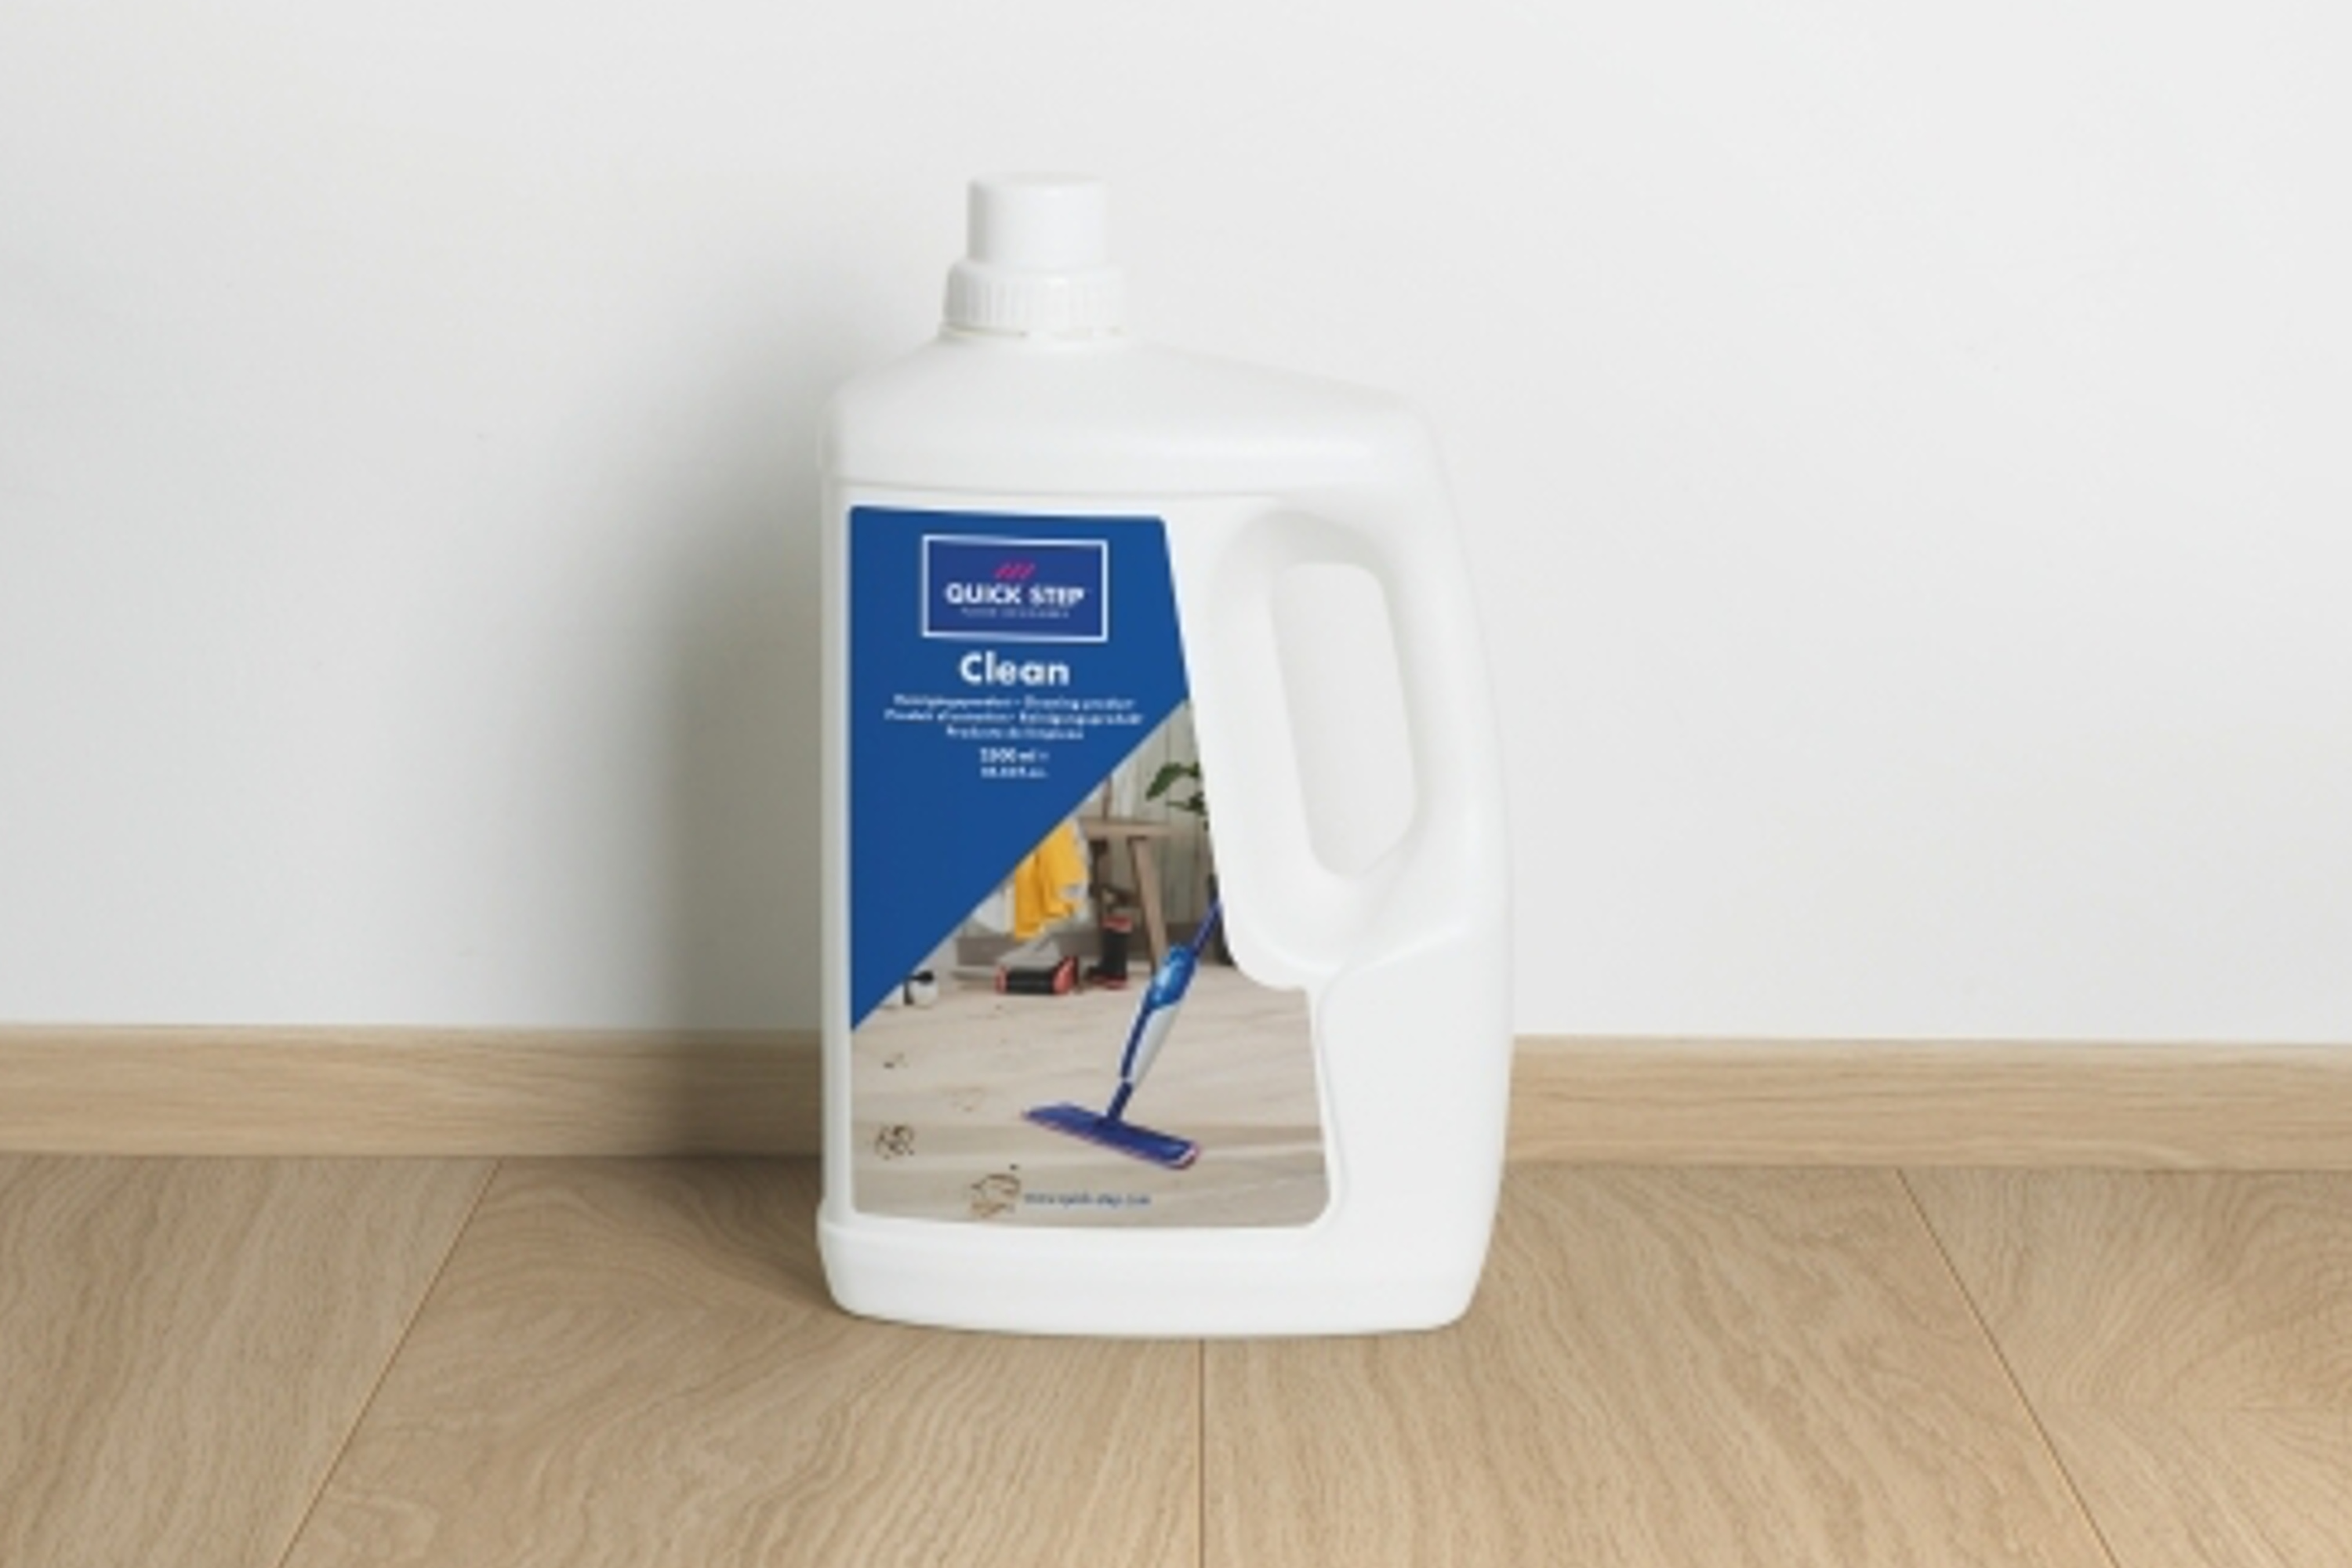 QUICK-STEP CLEAN - PRODUIT D